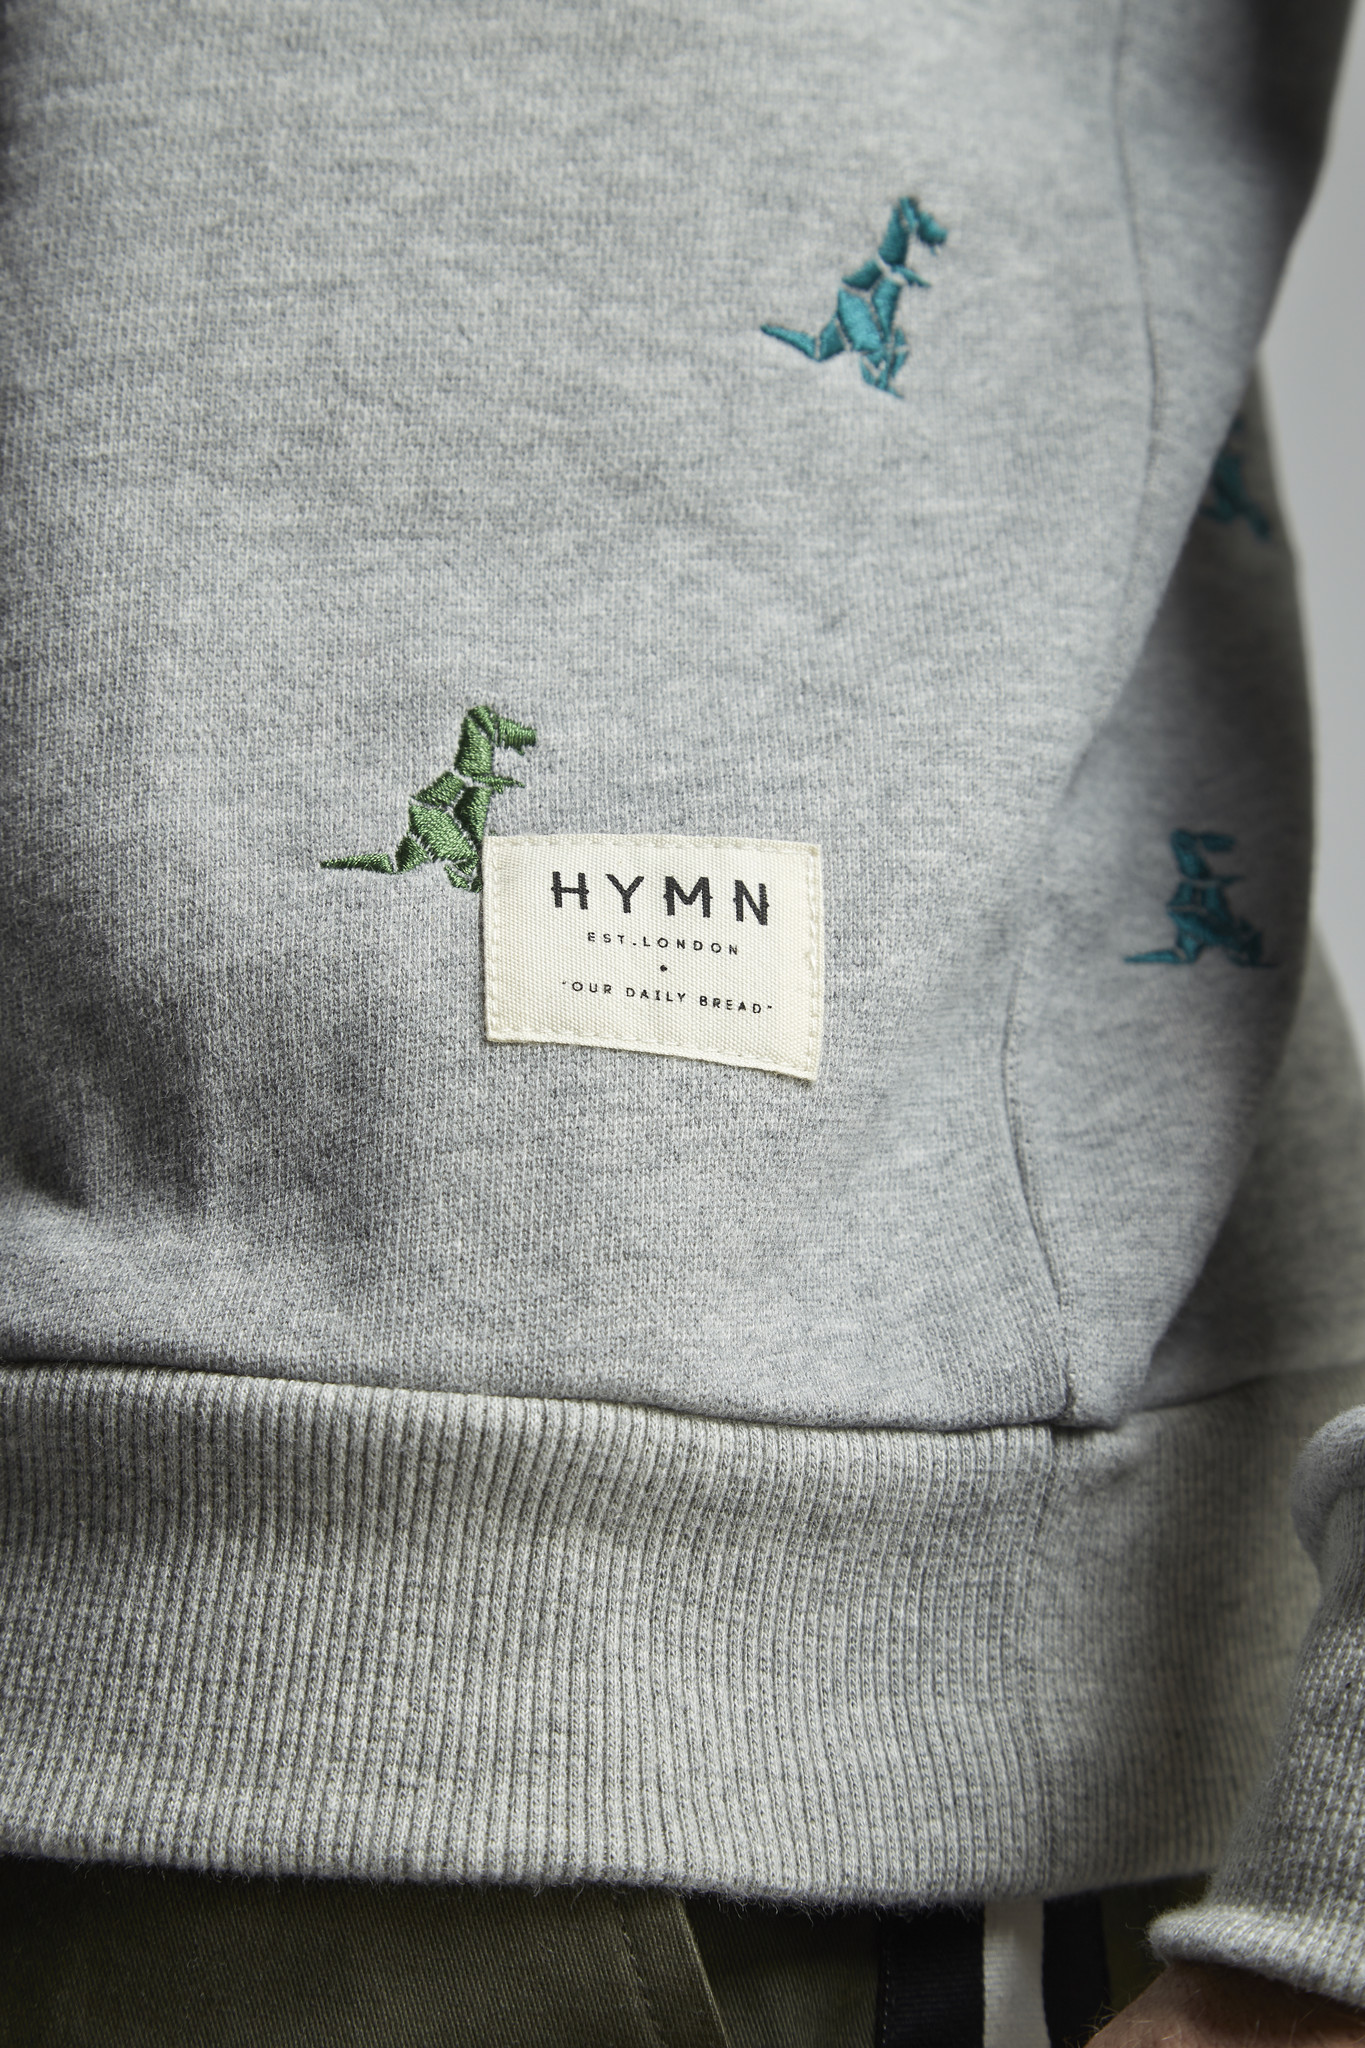 The NEW Hymn London Menswear Collection (SS19)